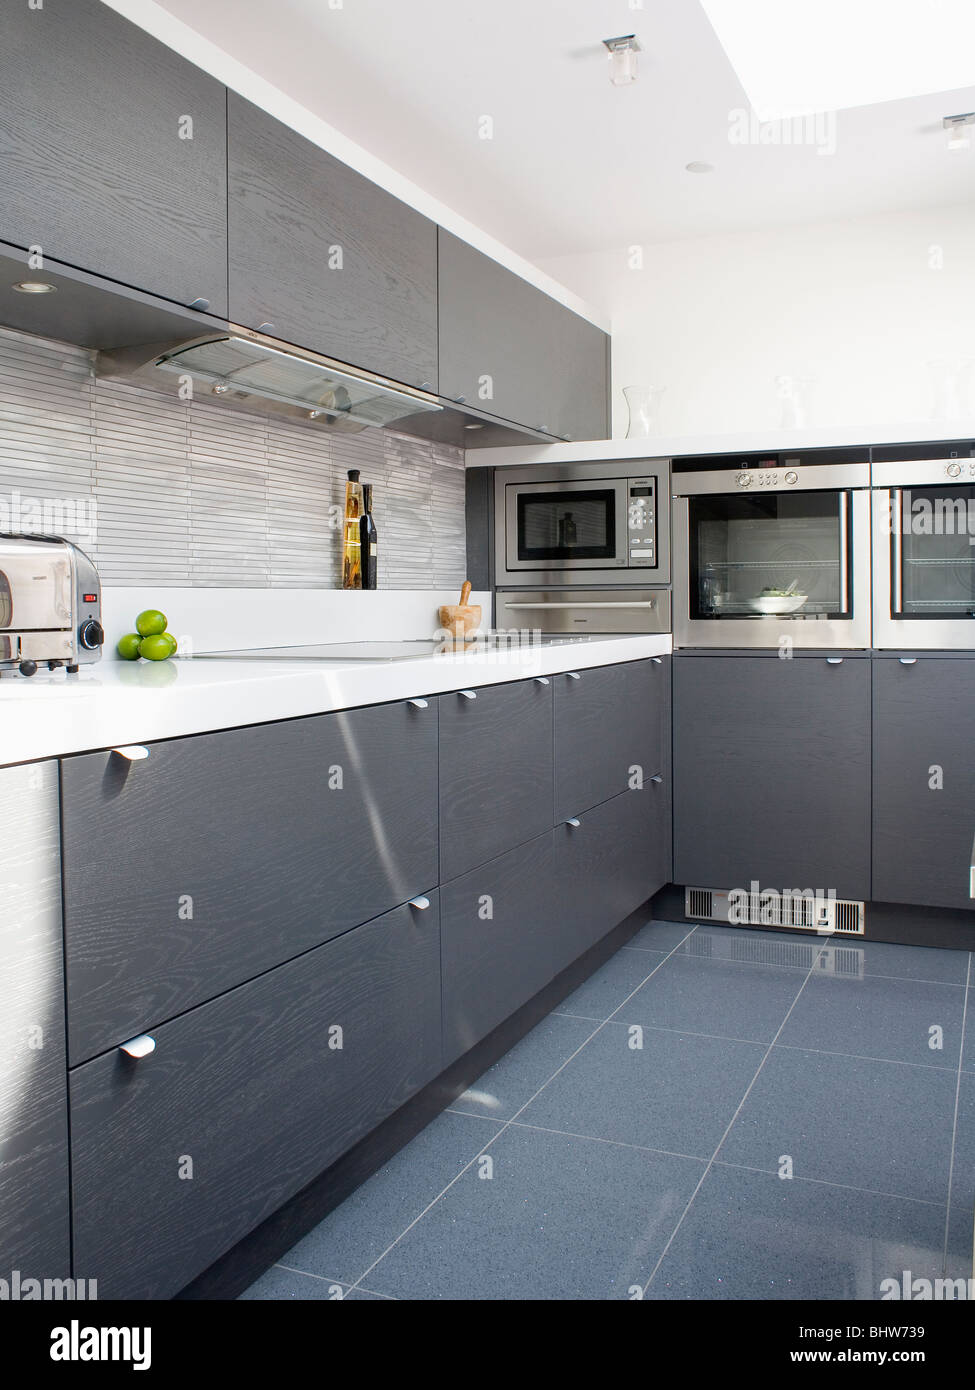 Charmant Grey Ceramic Floor Tiles In Modern White Kitchen With Dark Gray Fitted  Cupboards And Units